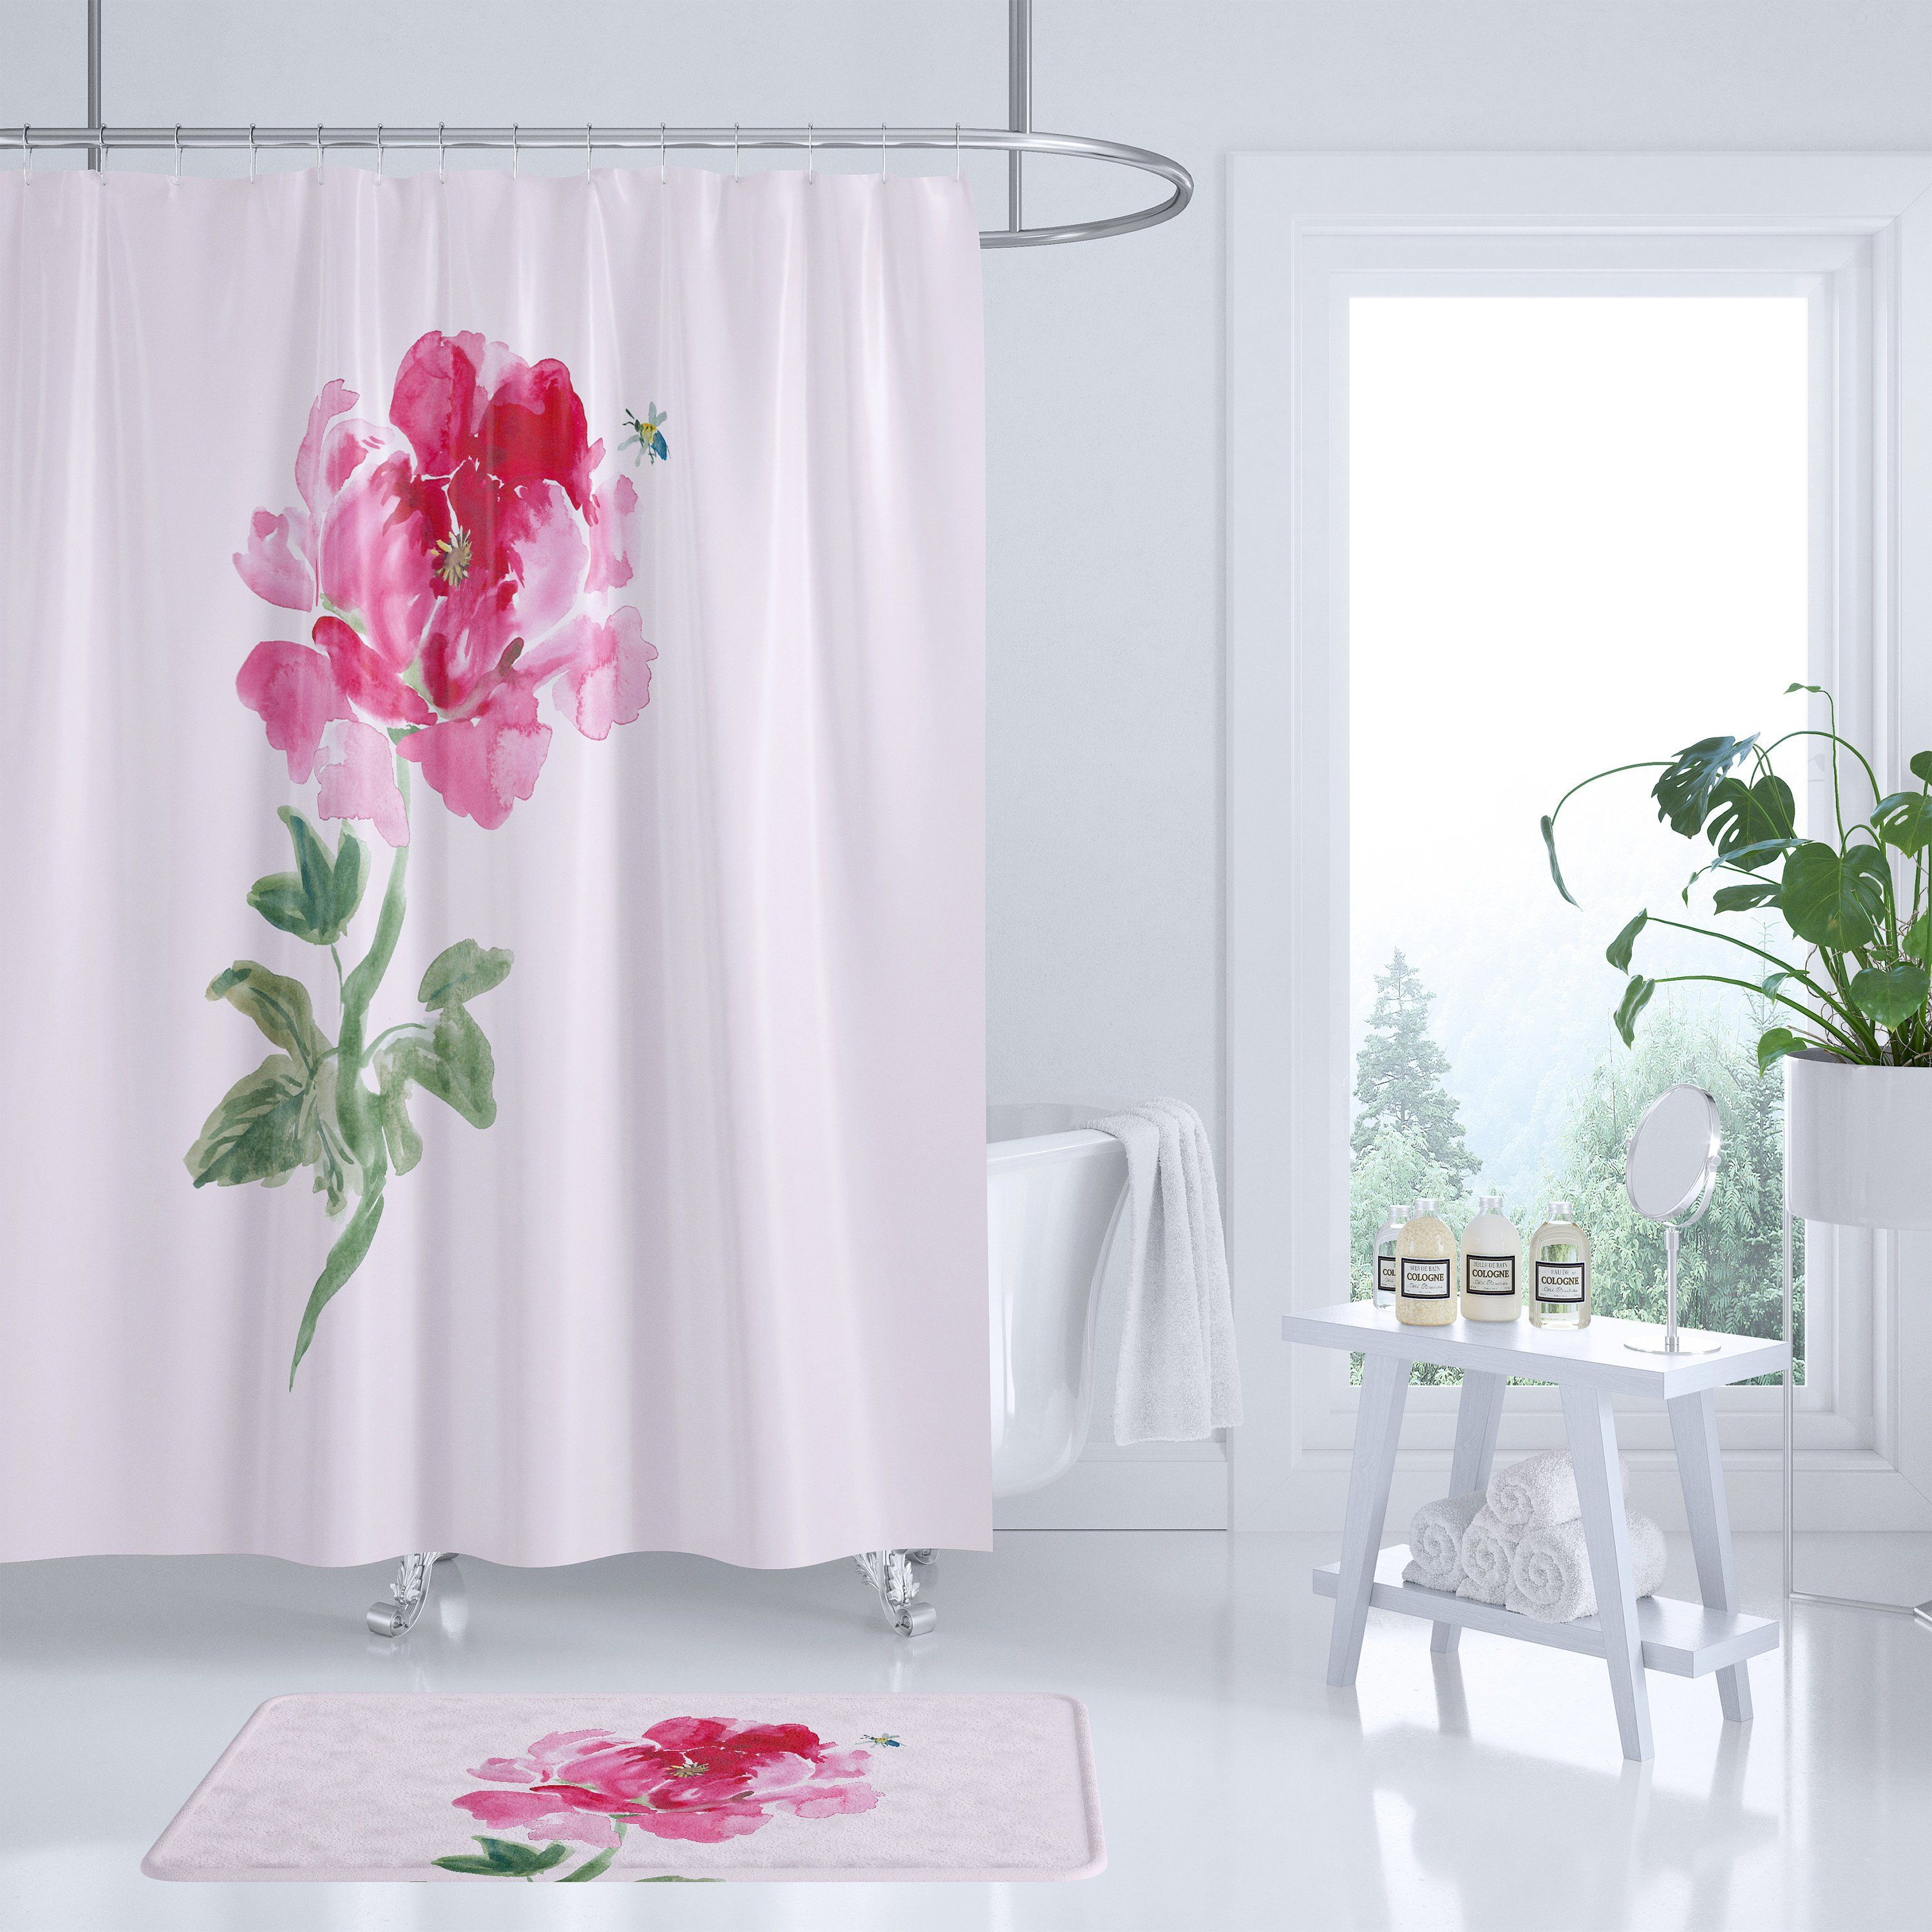 Peony Shower Curtain Pink Floral Fabric Watercolor Flower